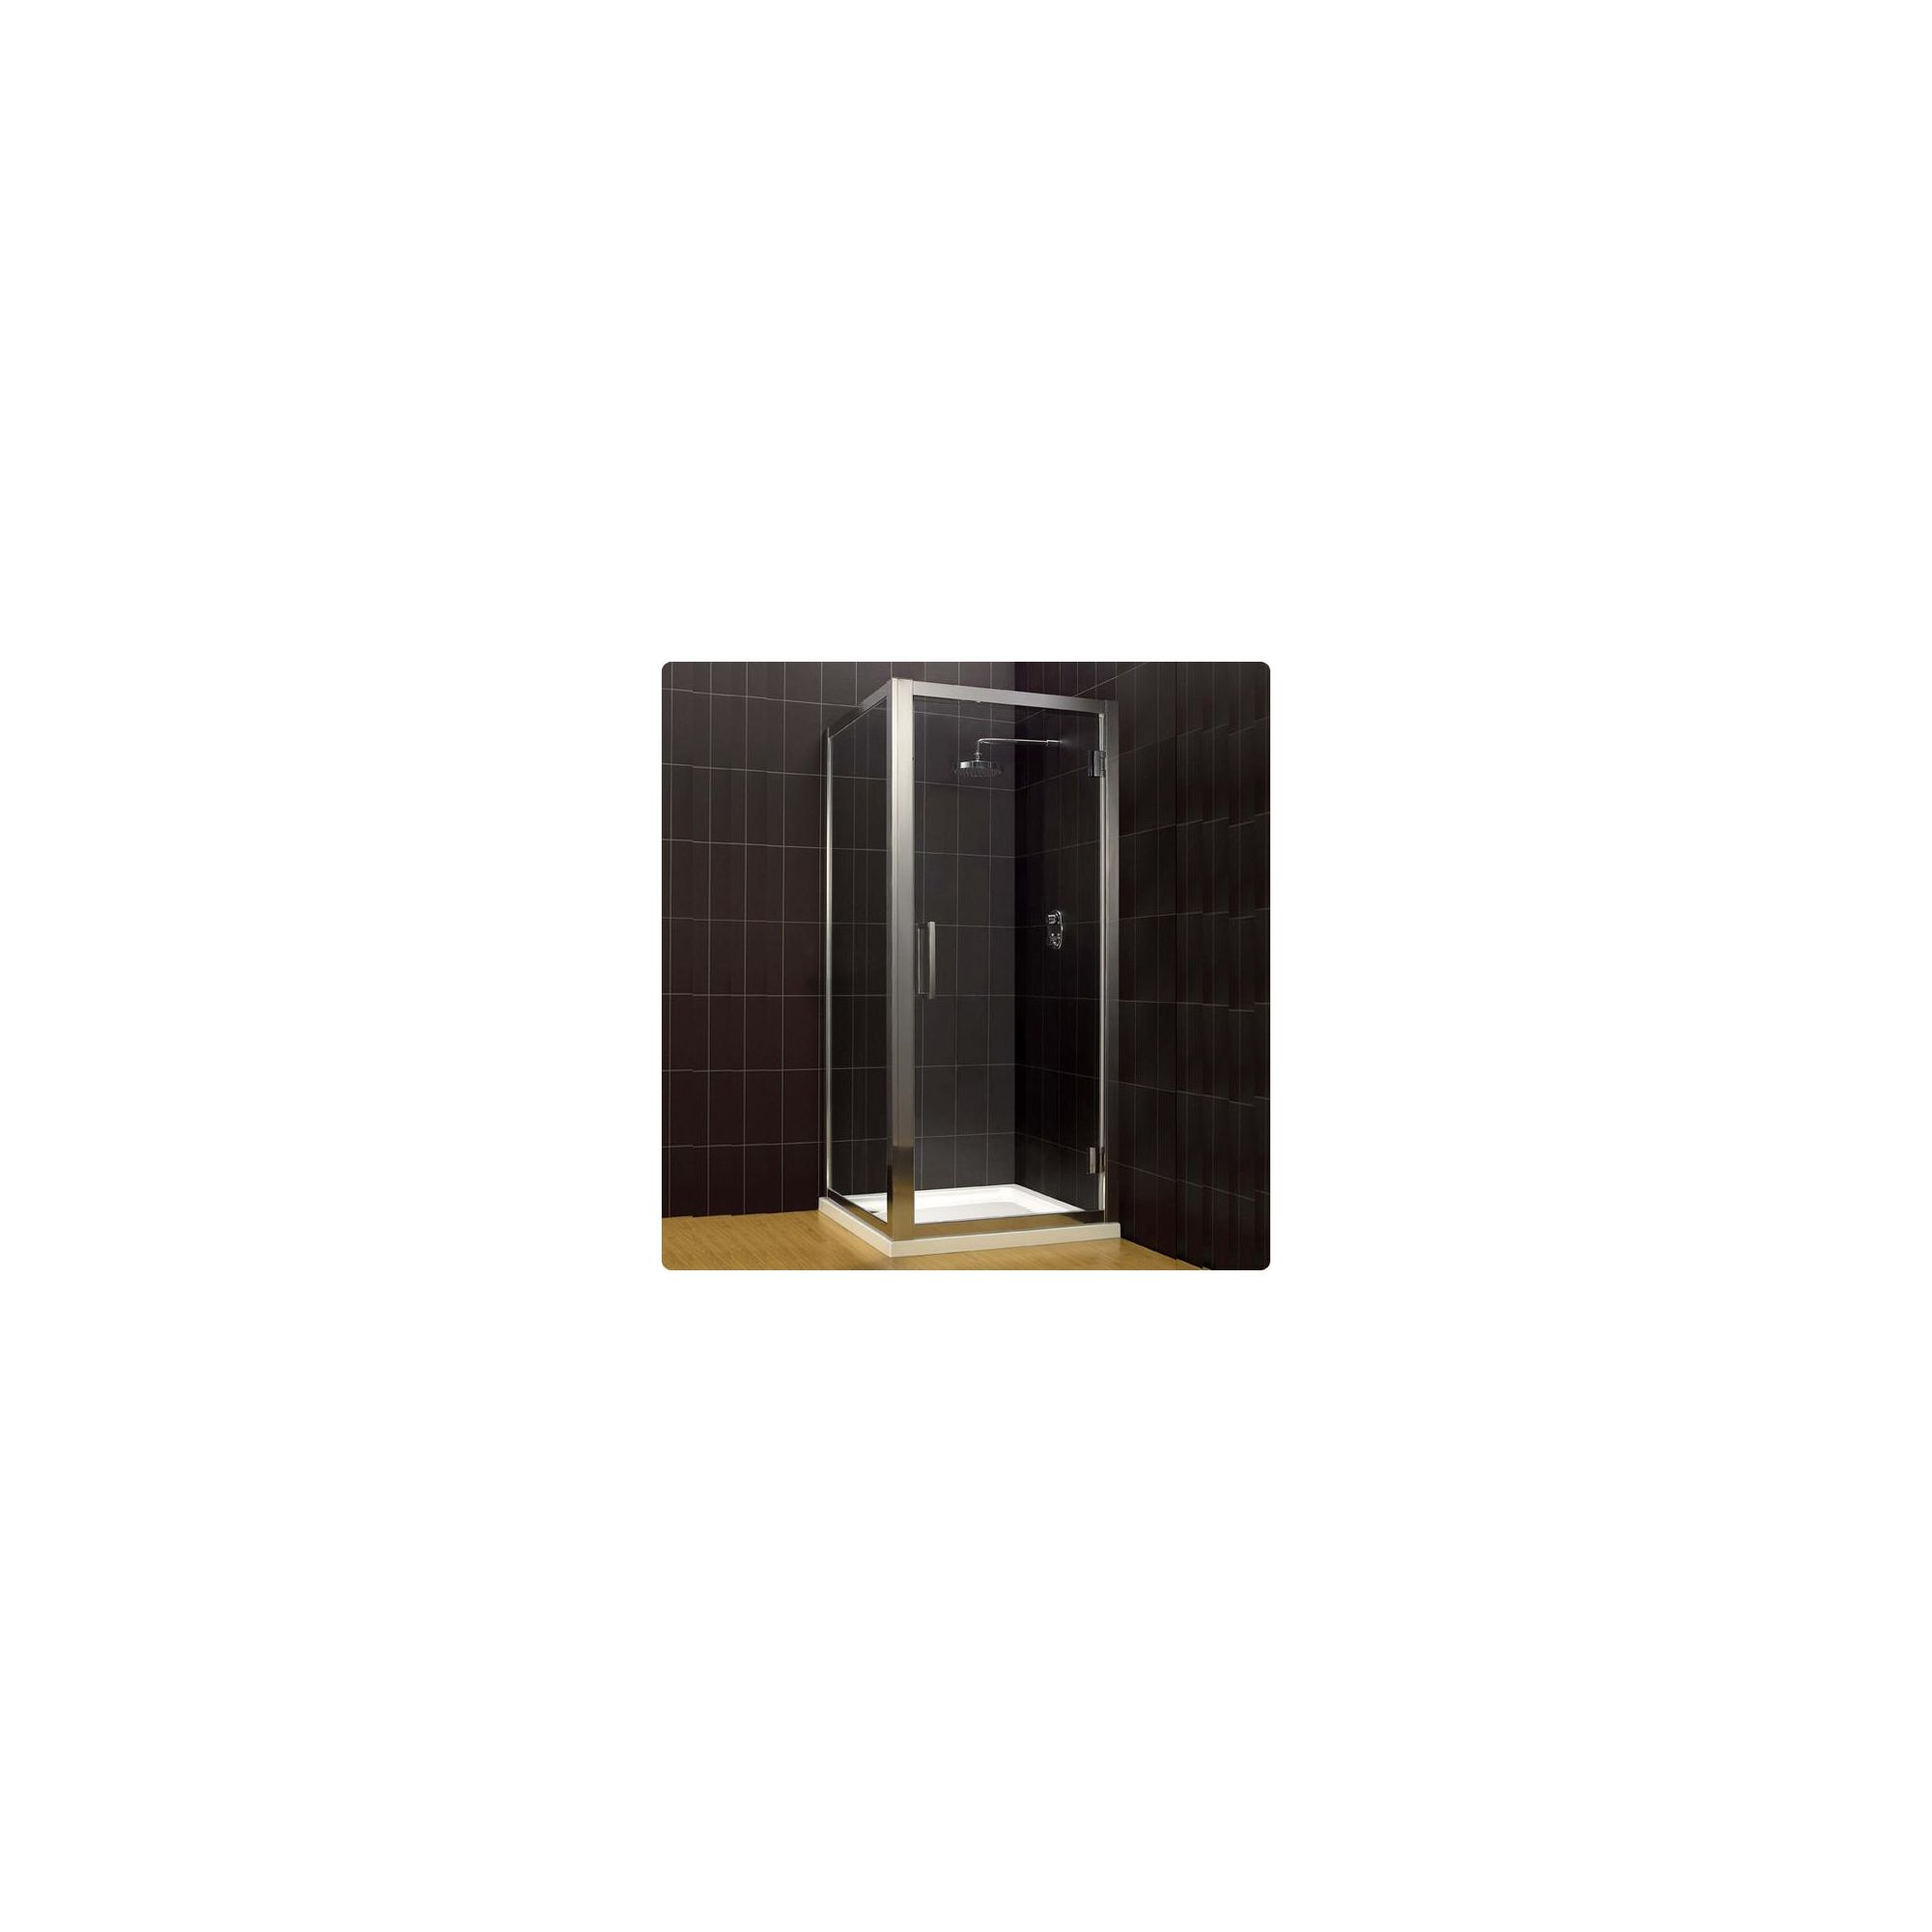 Duchy Supreme Silver Hinged Door Shower Enclosure, 1000mm x 760mm, Standard Tray, 8mm Glass at Tesco Direct